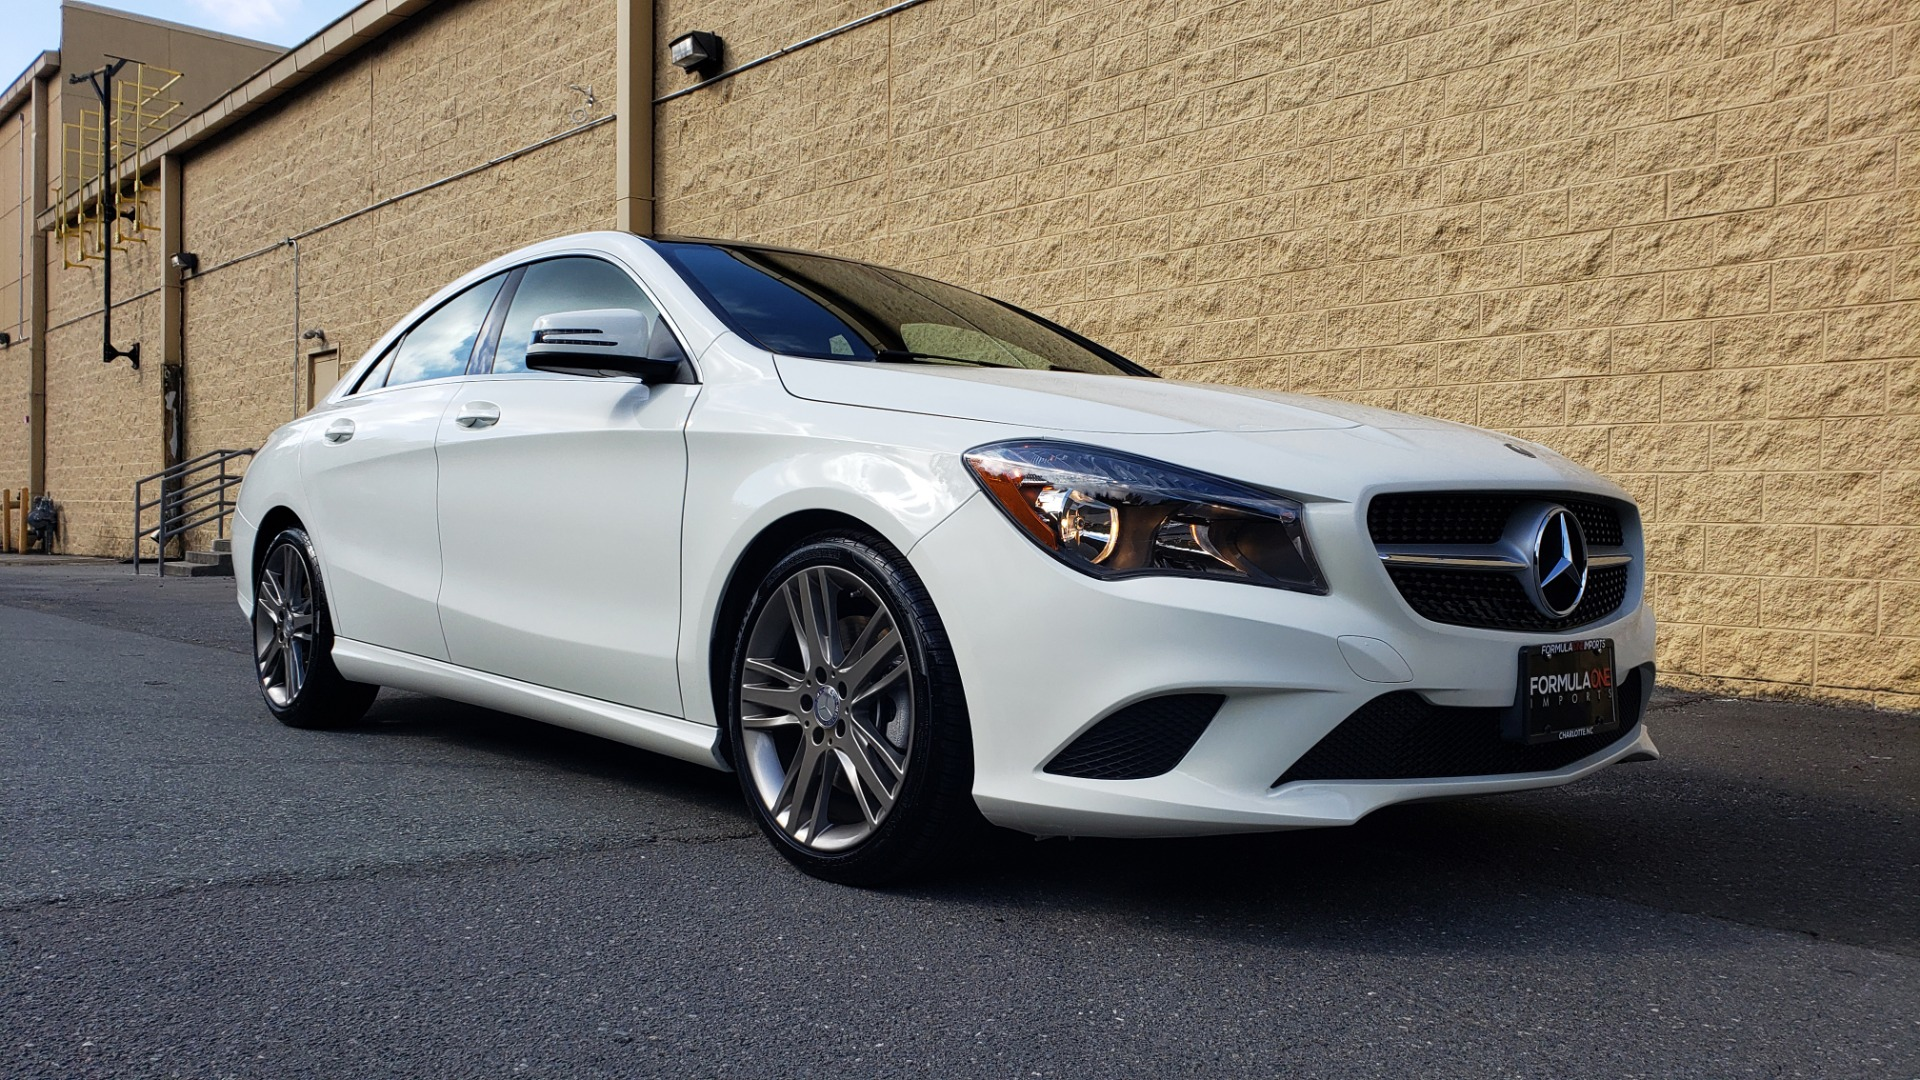 Used 2015 Mercedes-Benz CLA-Class CLA250 / FWD / SUNROOF / SPORT SUSP / CAMERA for sale Sold at Formula One Imports in Charlotte NC 28227 4